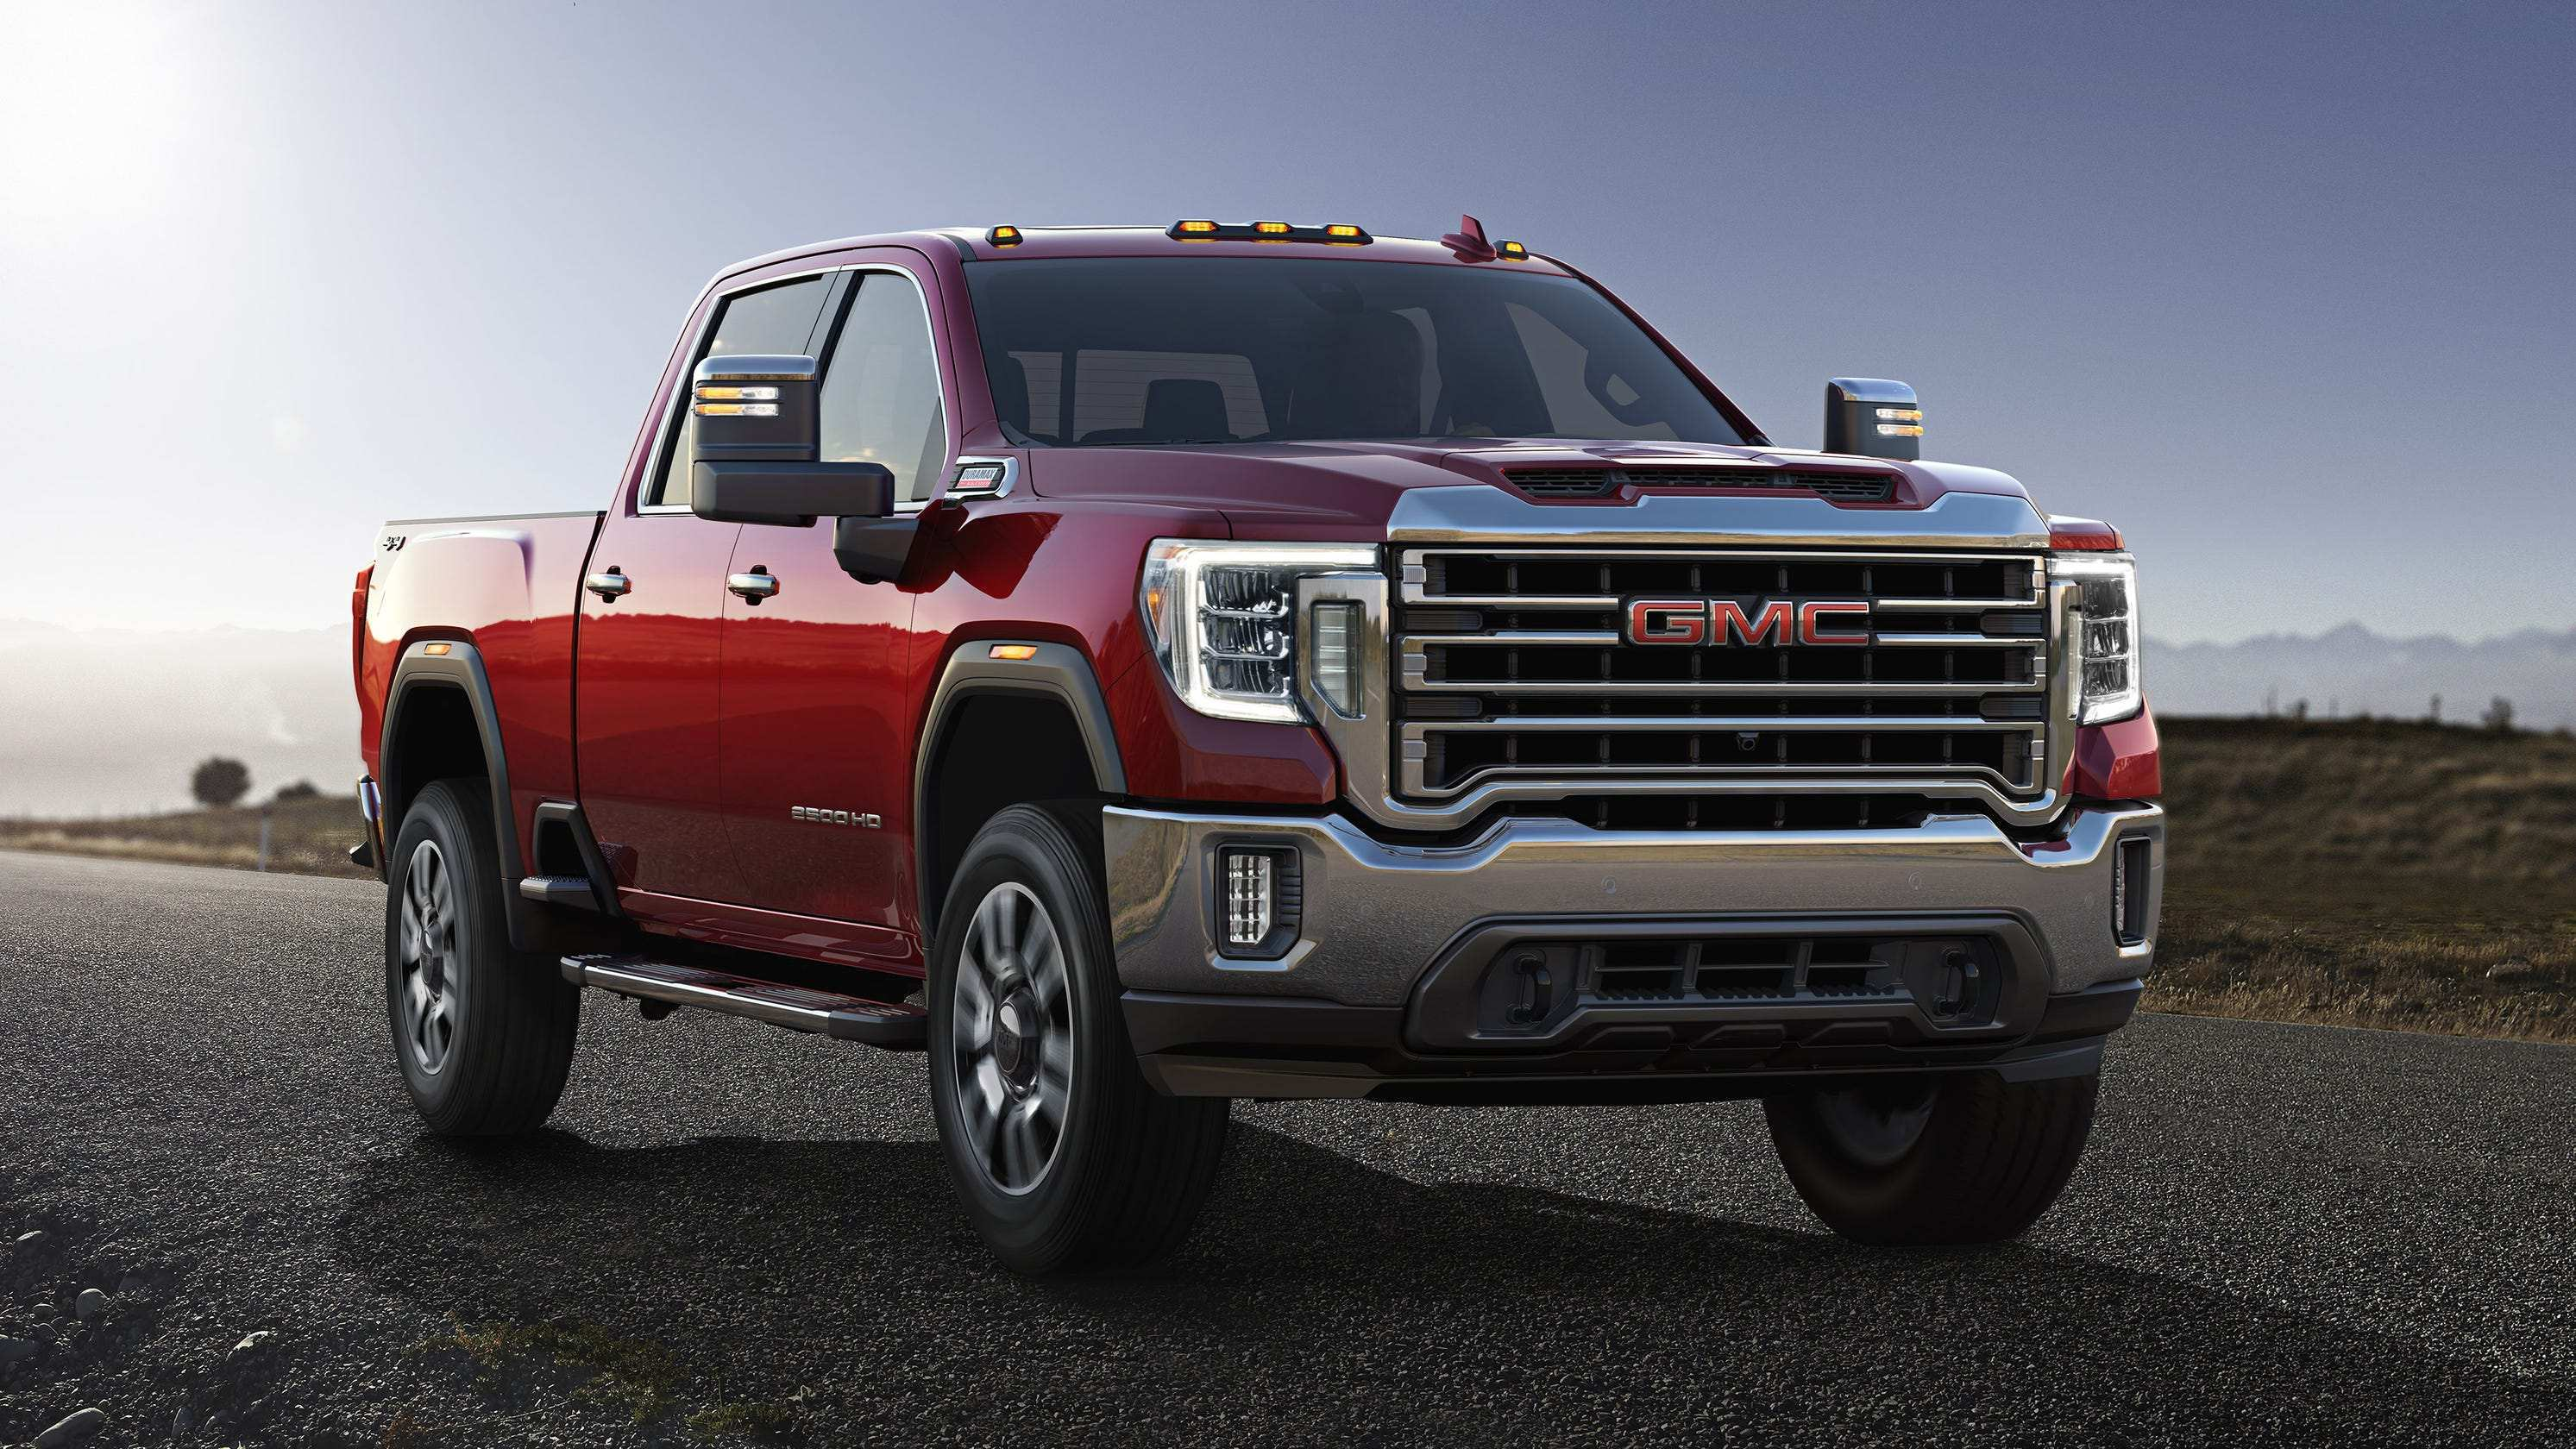 90 The Best 2020 Gmc Sierra Hd Denali Concept And Review